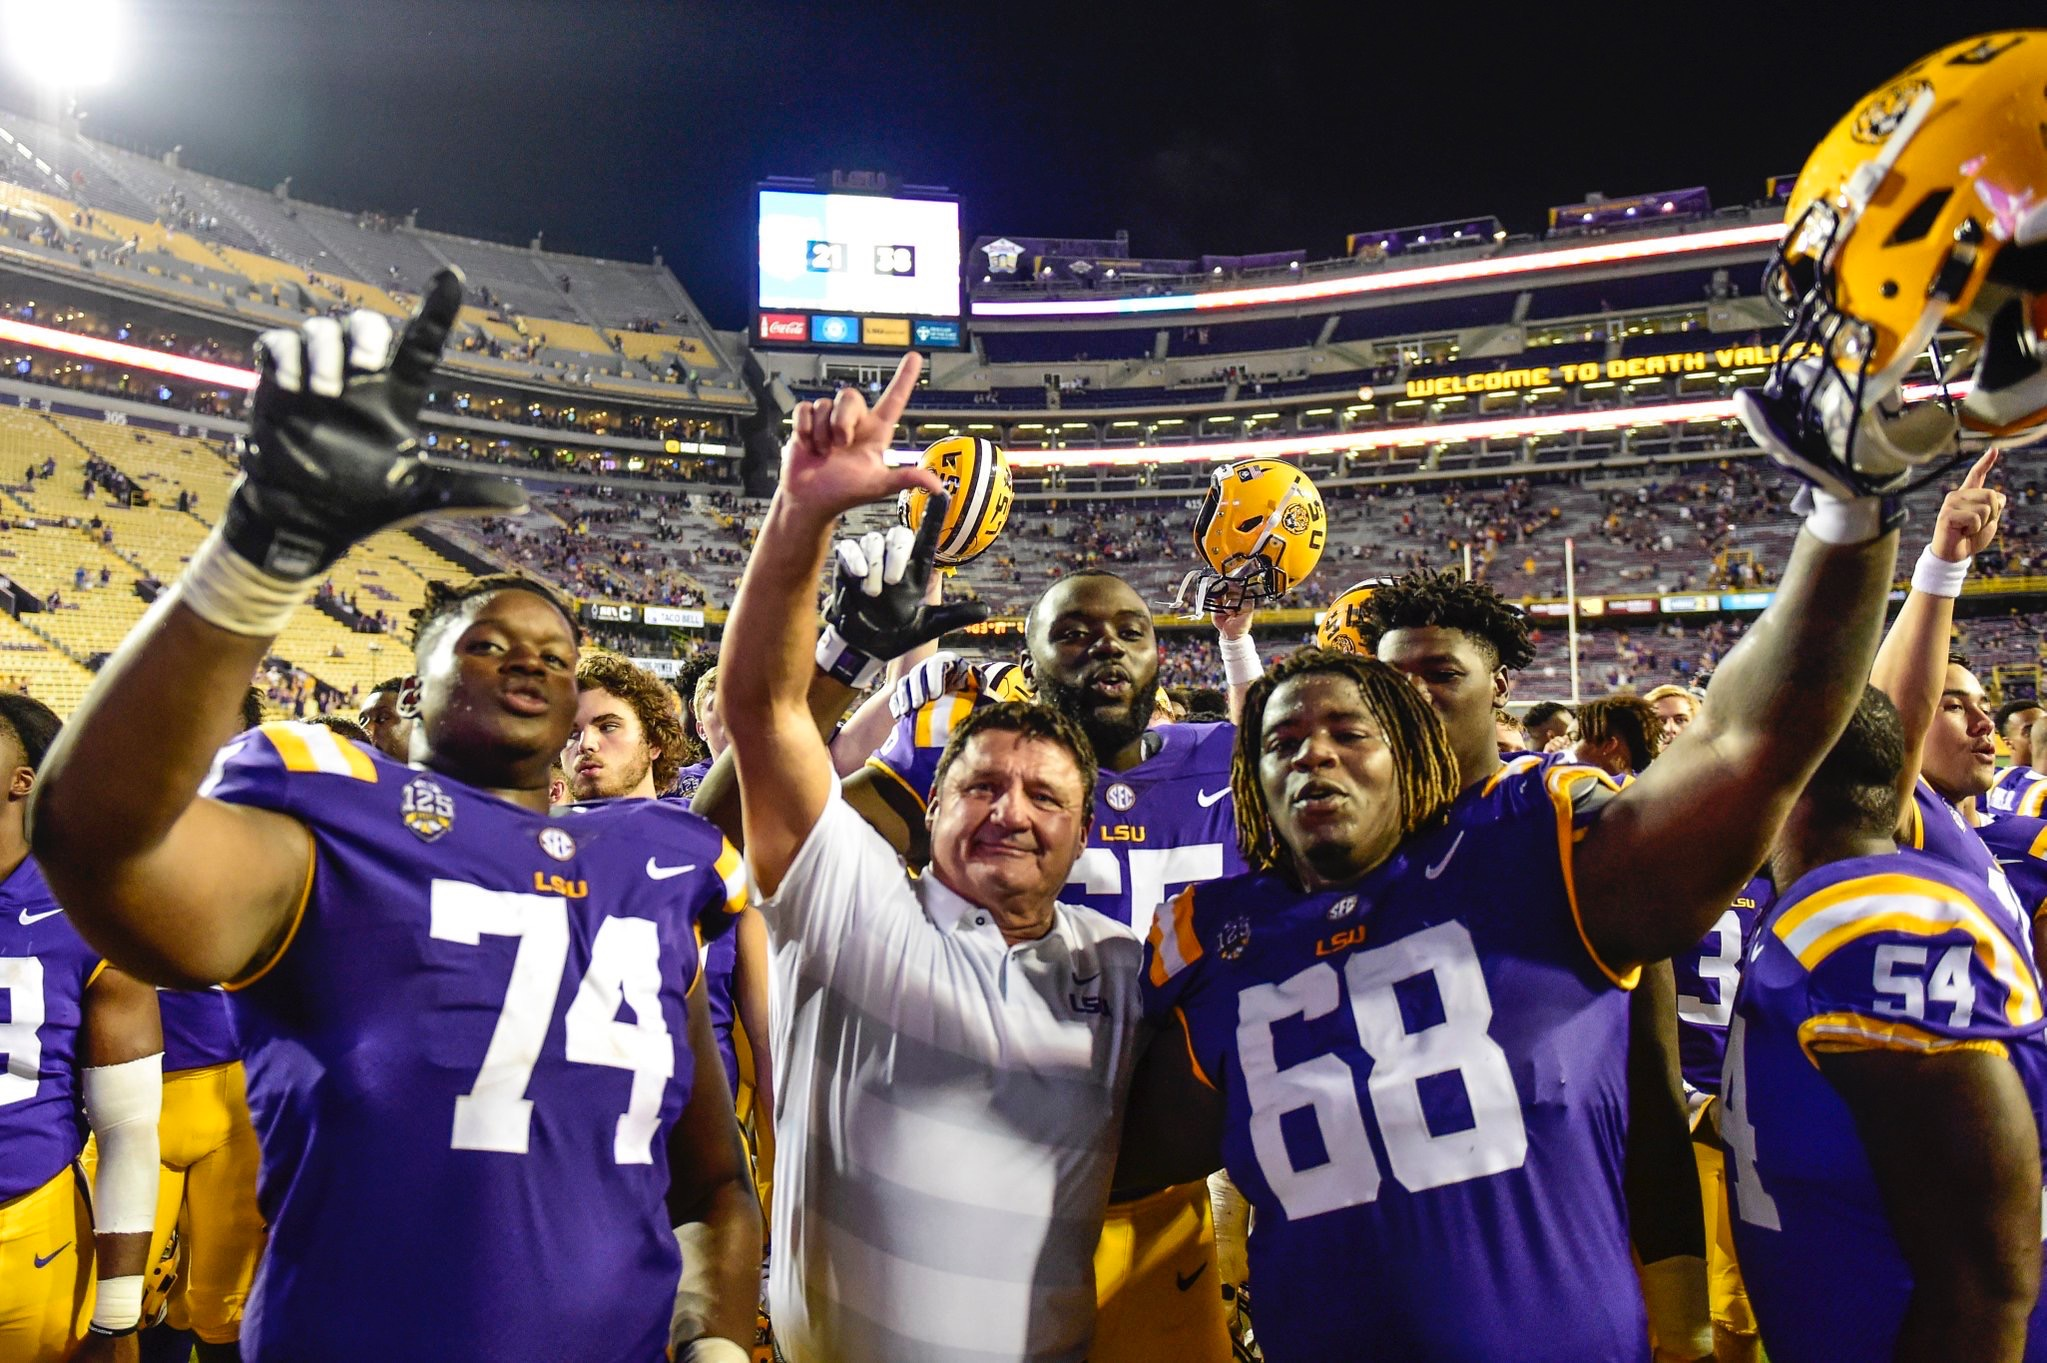 LSU jumps one spot to No. 5 in latest AP poll